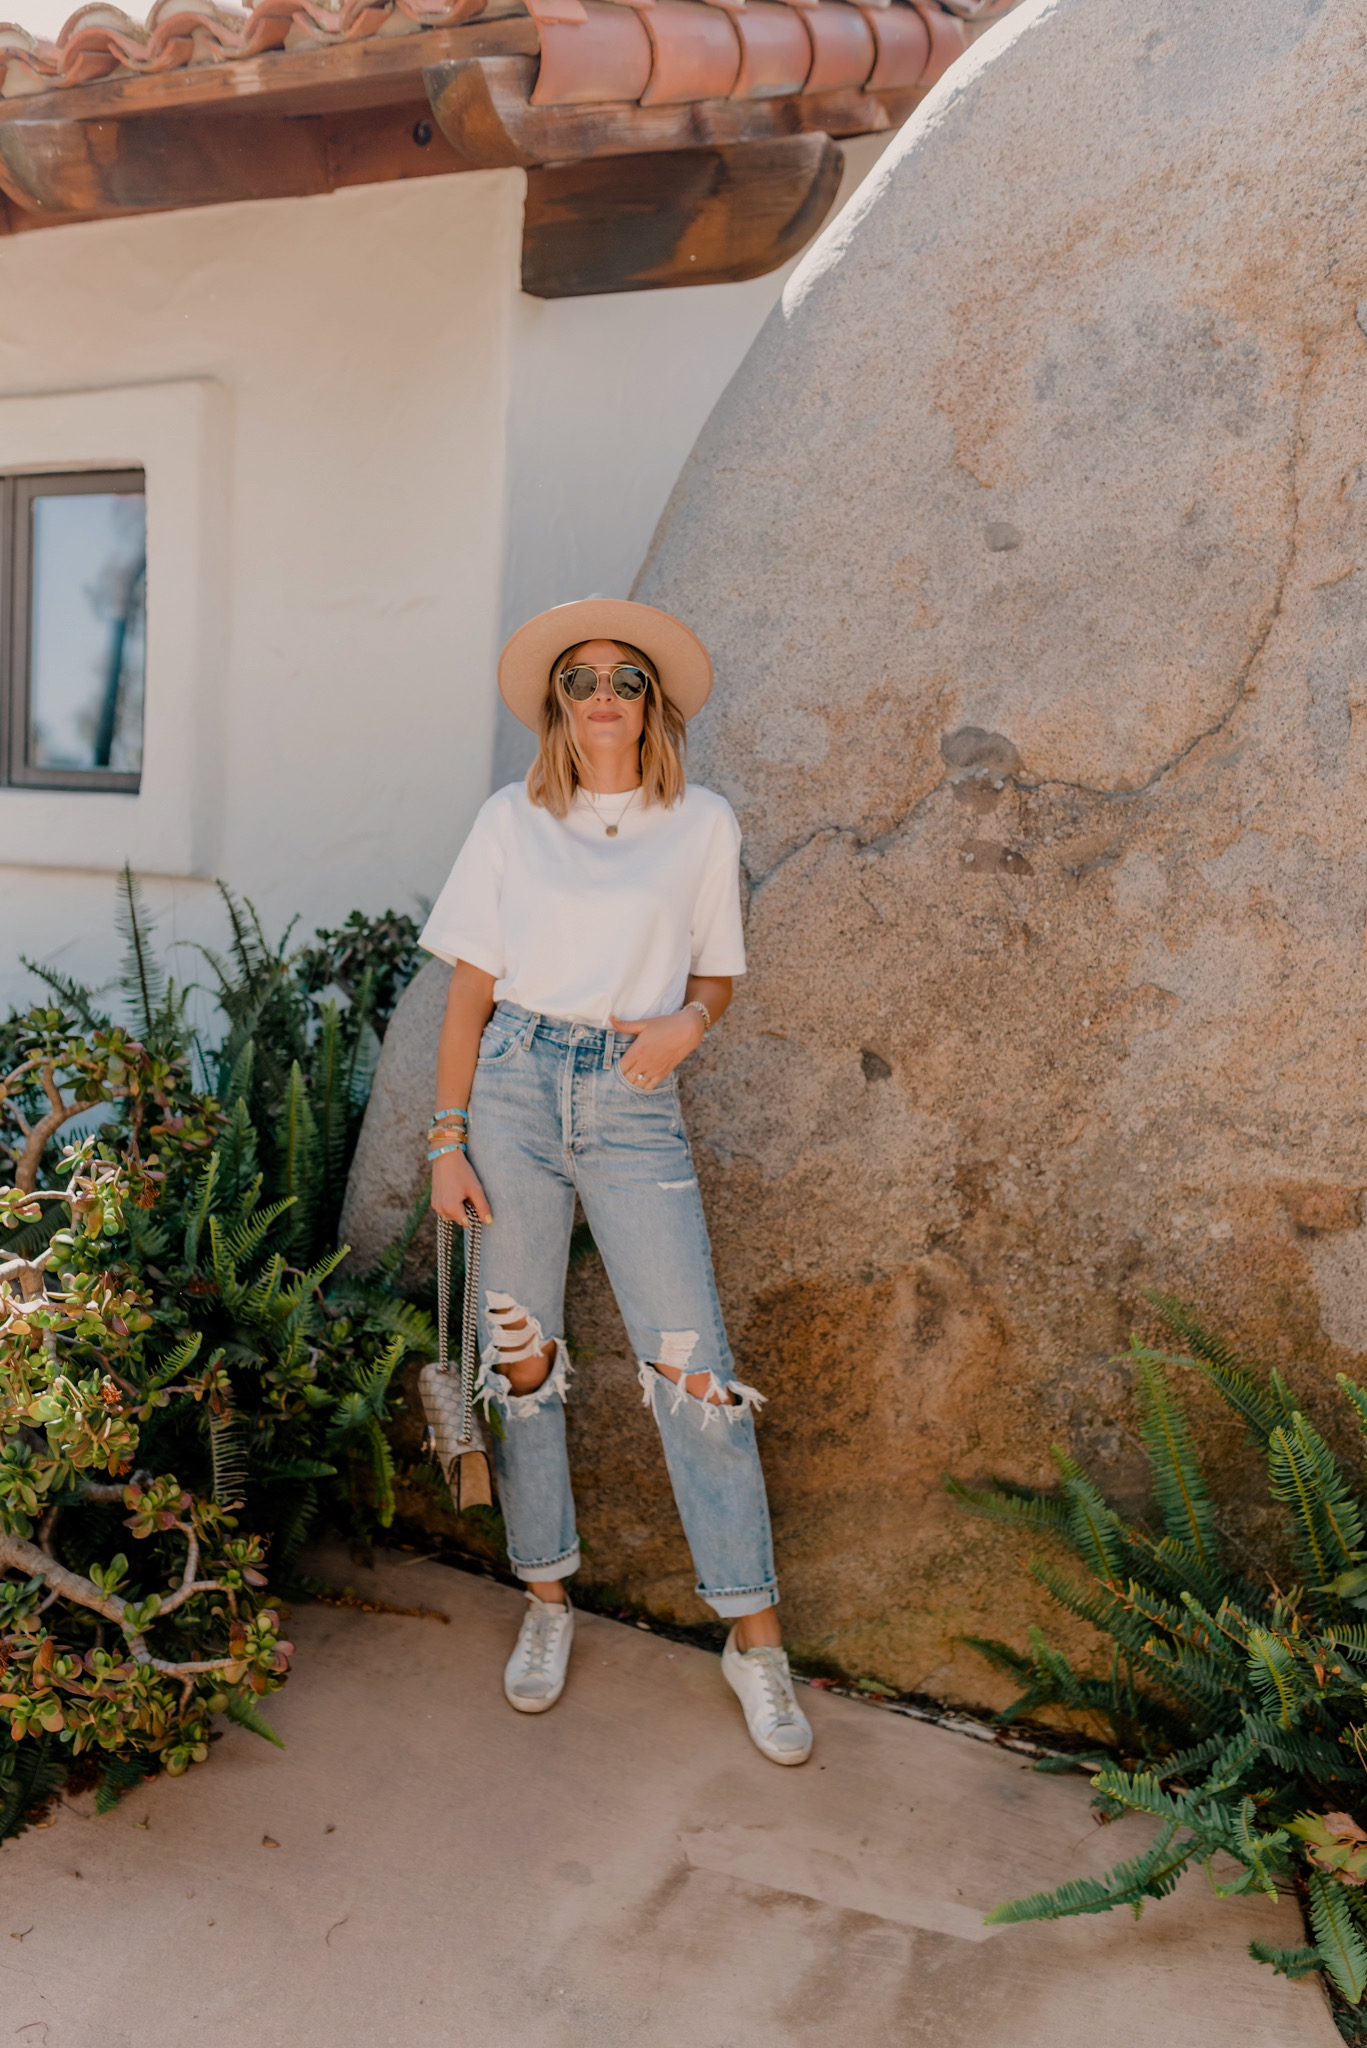 Golden Goose Sneakers by popular San Diego fashion blog, Navy Grace: image of a woman wearing a pair of Golden Goose distressed Superstar sneakers, 90s Mid Rise Loose Fit  AGOLDE brand jeans, Target Women's Short Sleeve T-Shirt, Gigi Pip Monroe Oatmeal rancher hat, and Ray-Ban sunglasses.